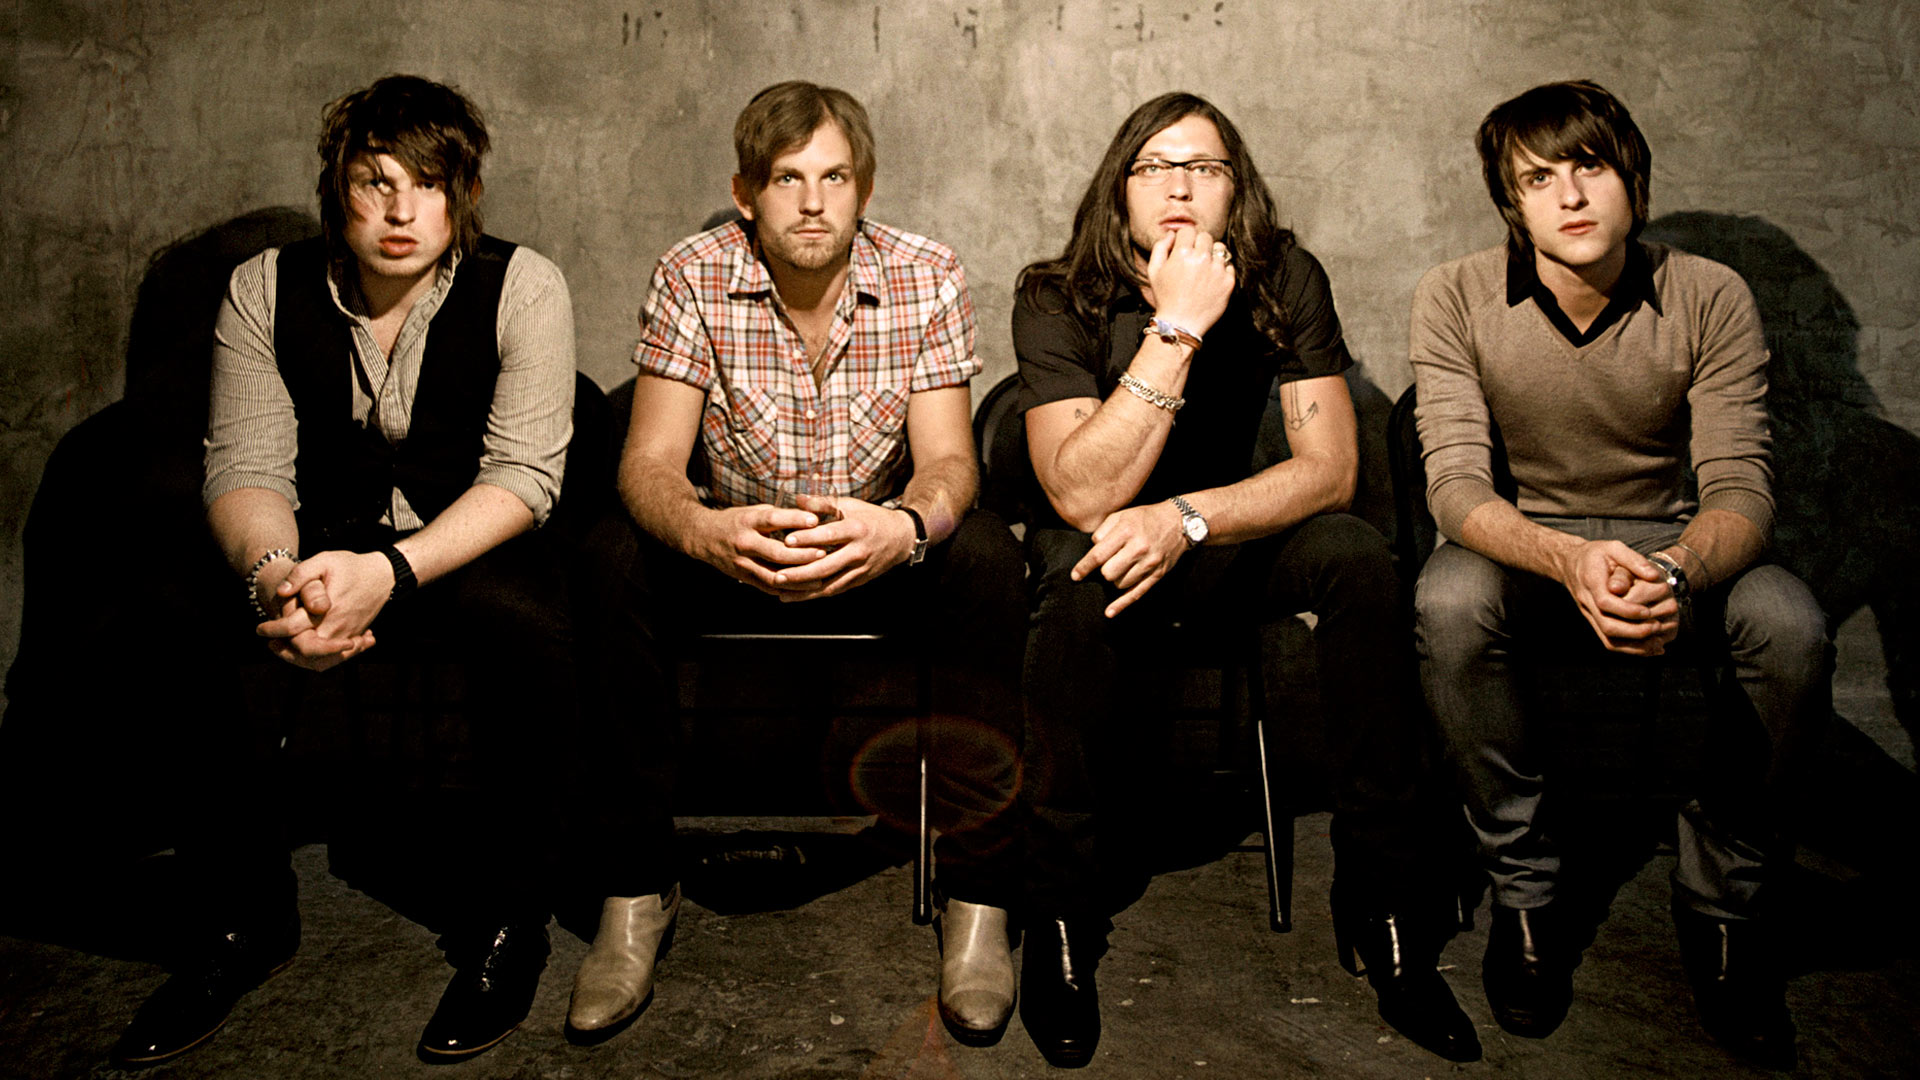 Kings of Leon backdrop wallpaper